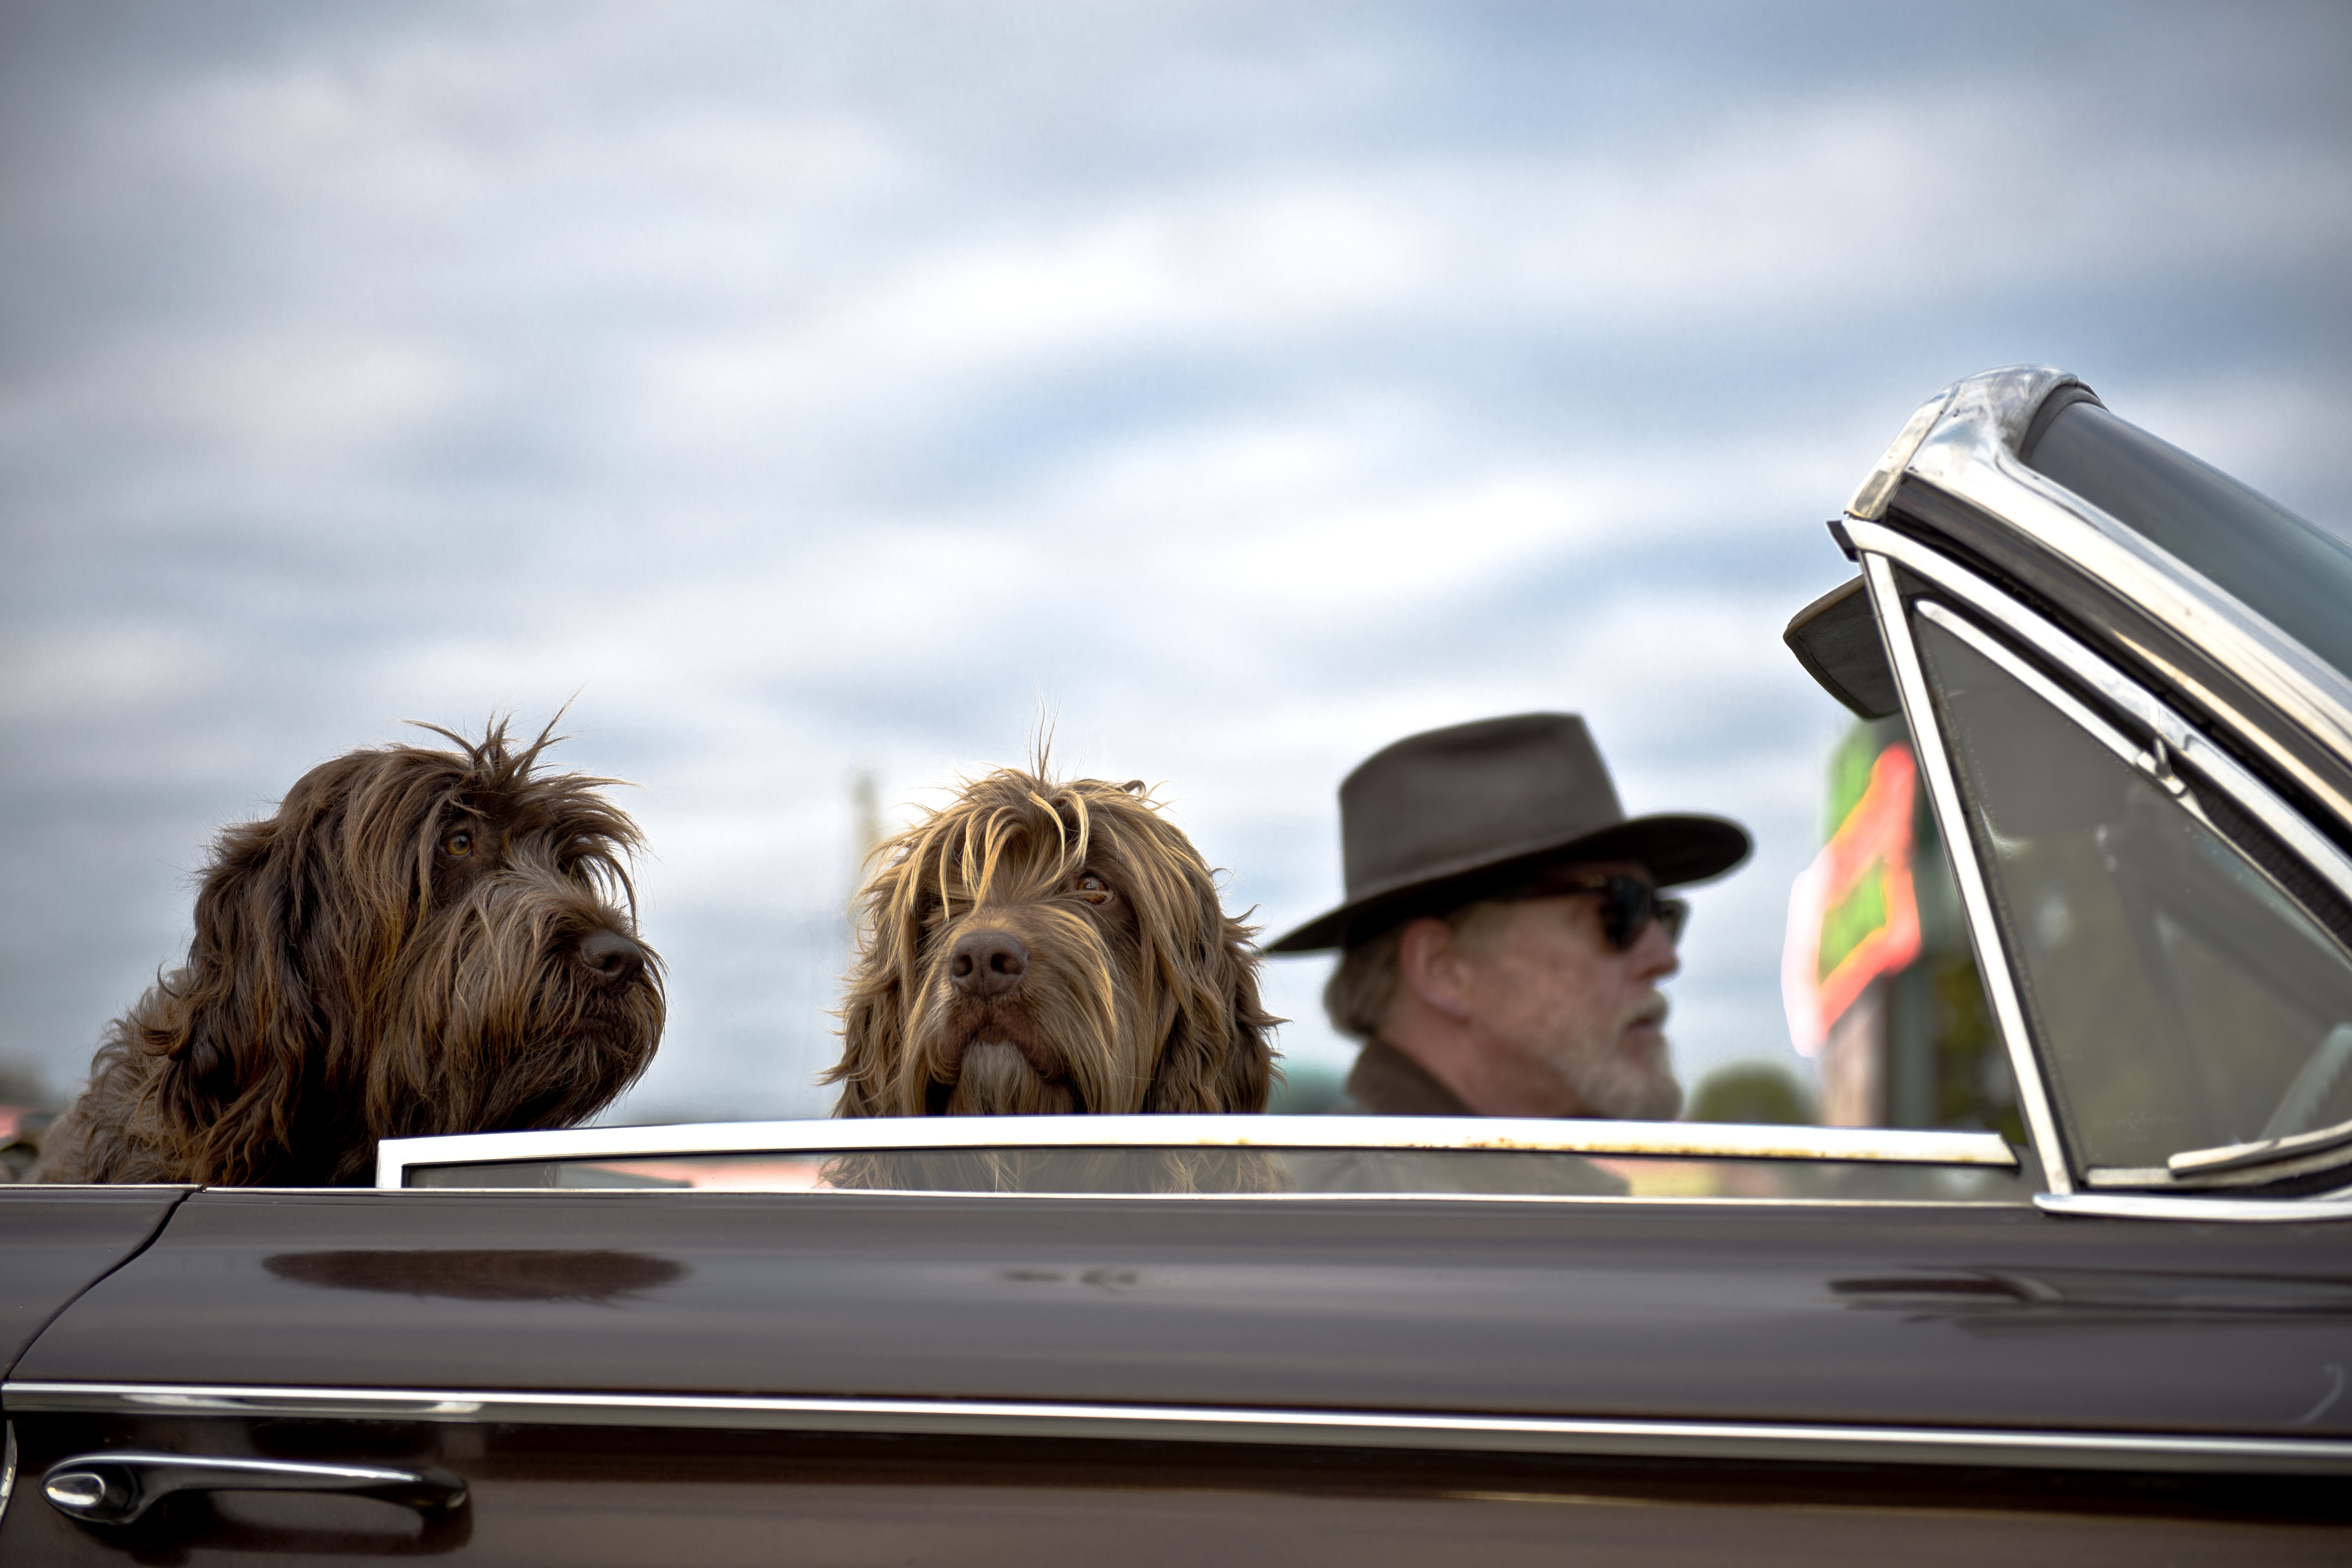 Man with a beard and sunglasses riding in his convertible with two dogs